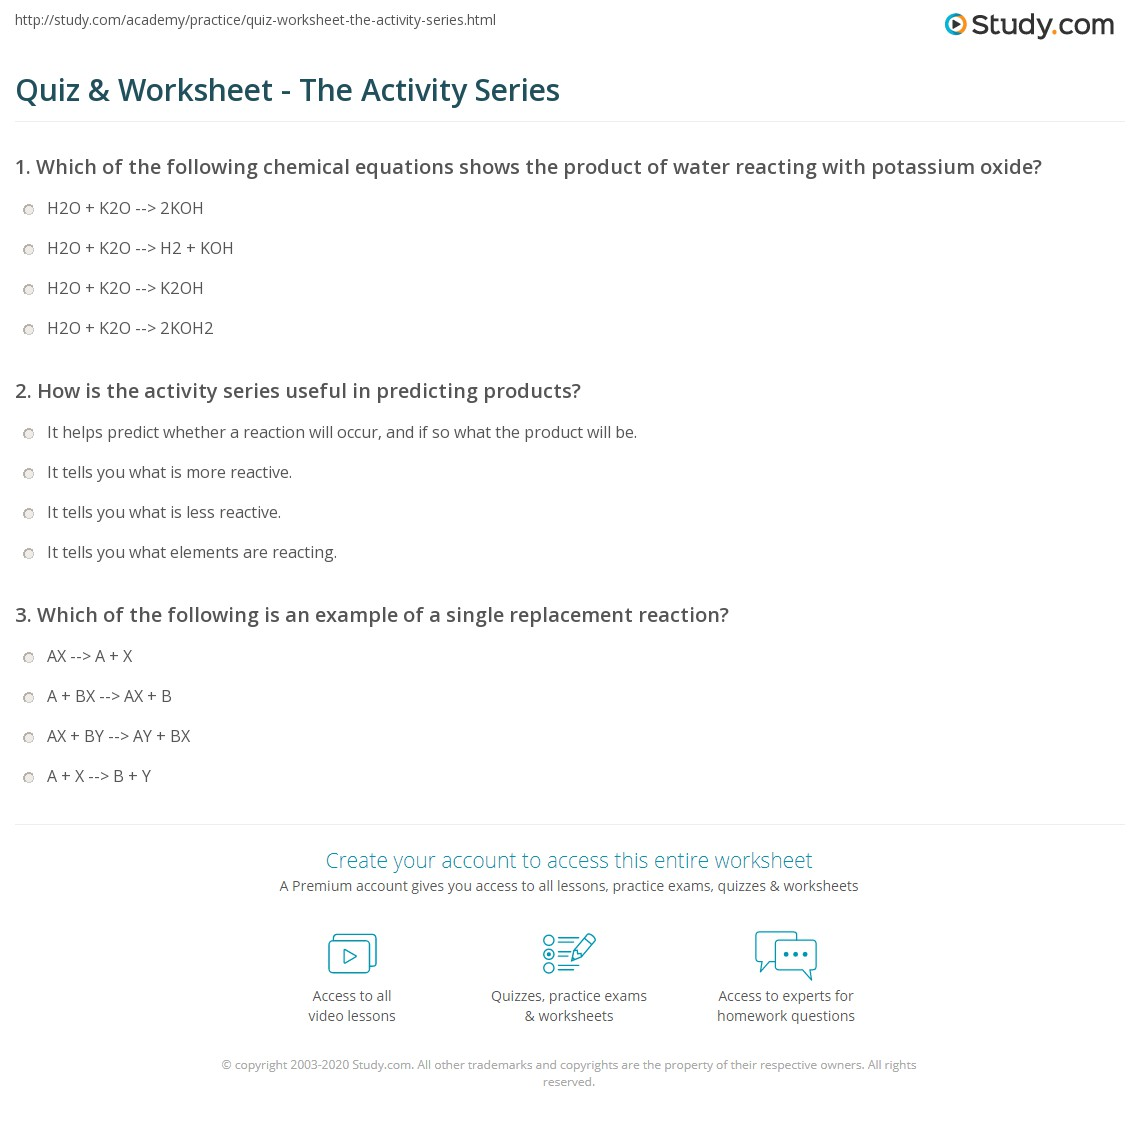 Quiz & Worksheet - The Activity Series | Study.com